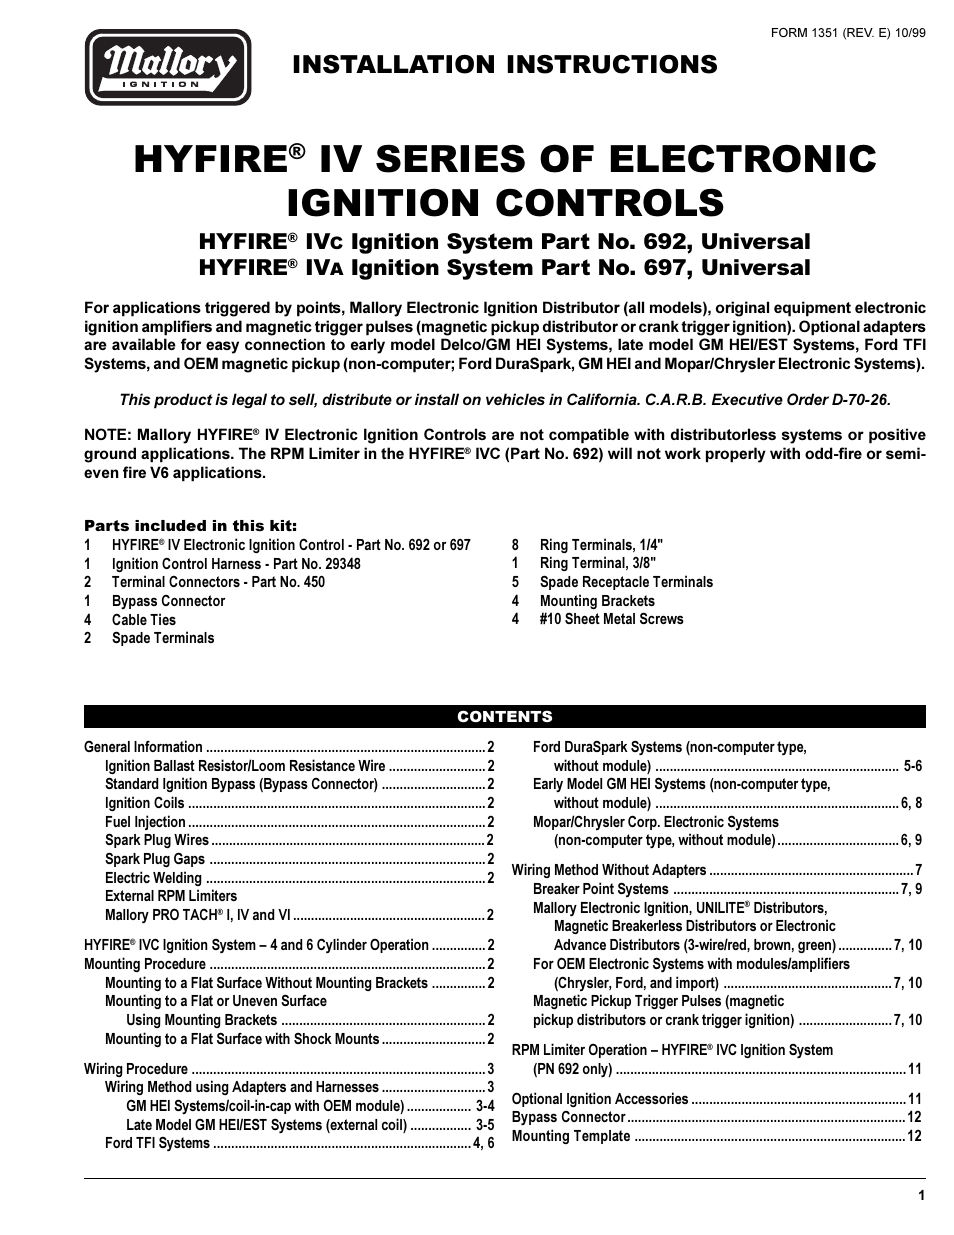 WRG-9367] Mallory Ignition Hyfire Wiring Diagram on